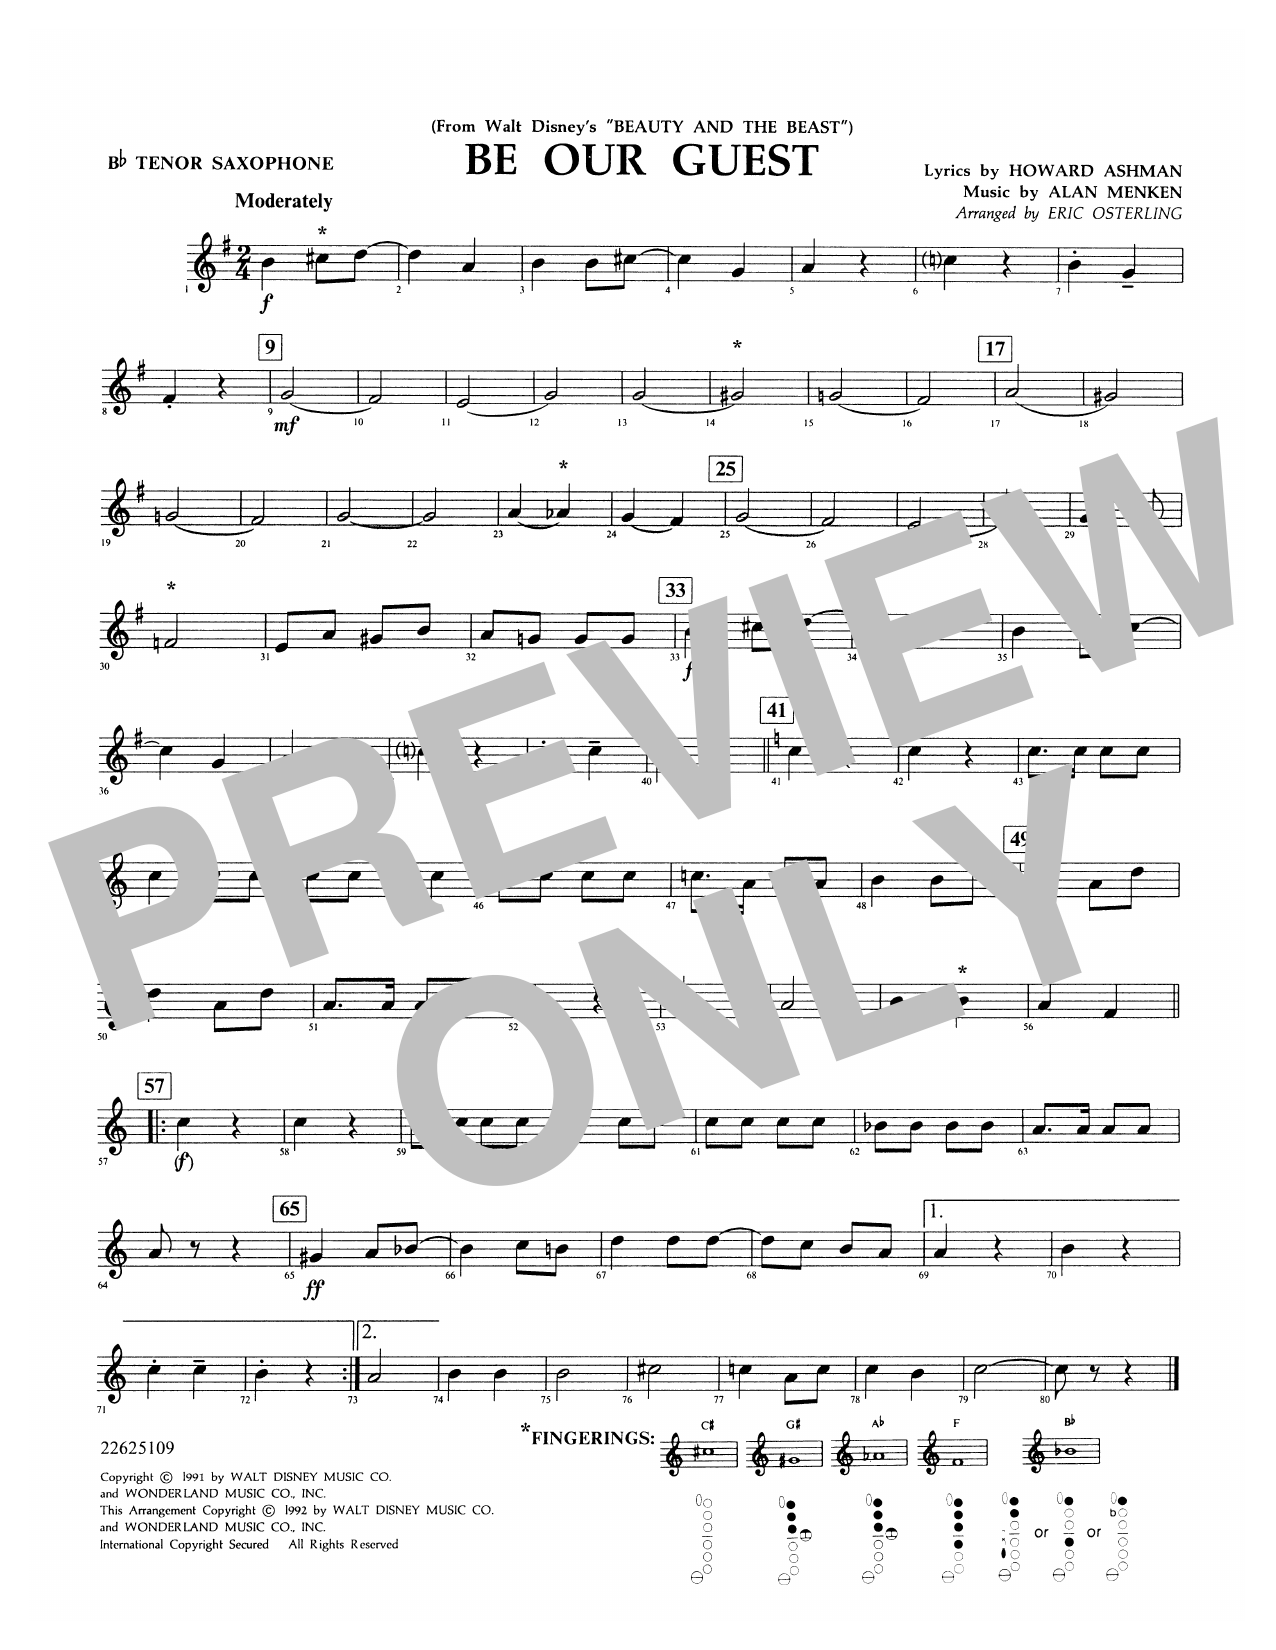 Be Our Guest (from Beauty And The Beast) (arr. Eric Osterling) - Bb Tenor Saxophone Digitale Noten